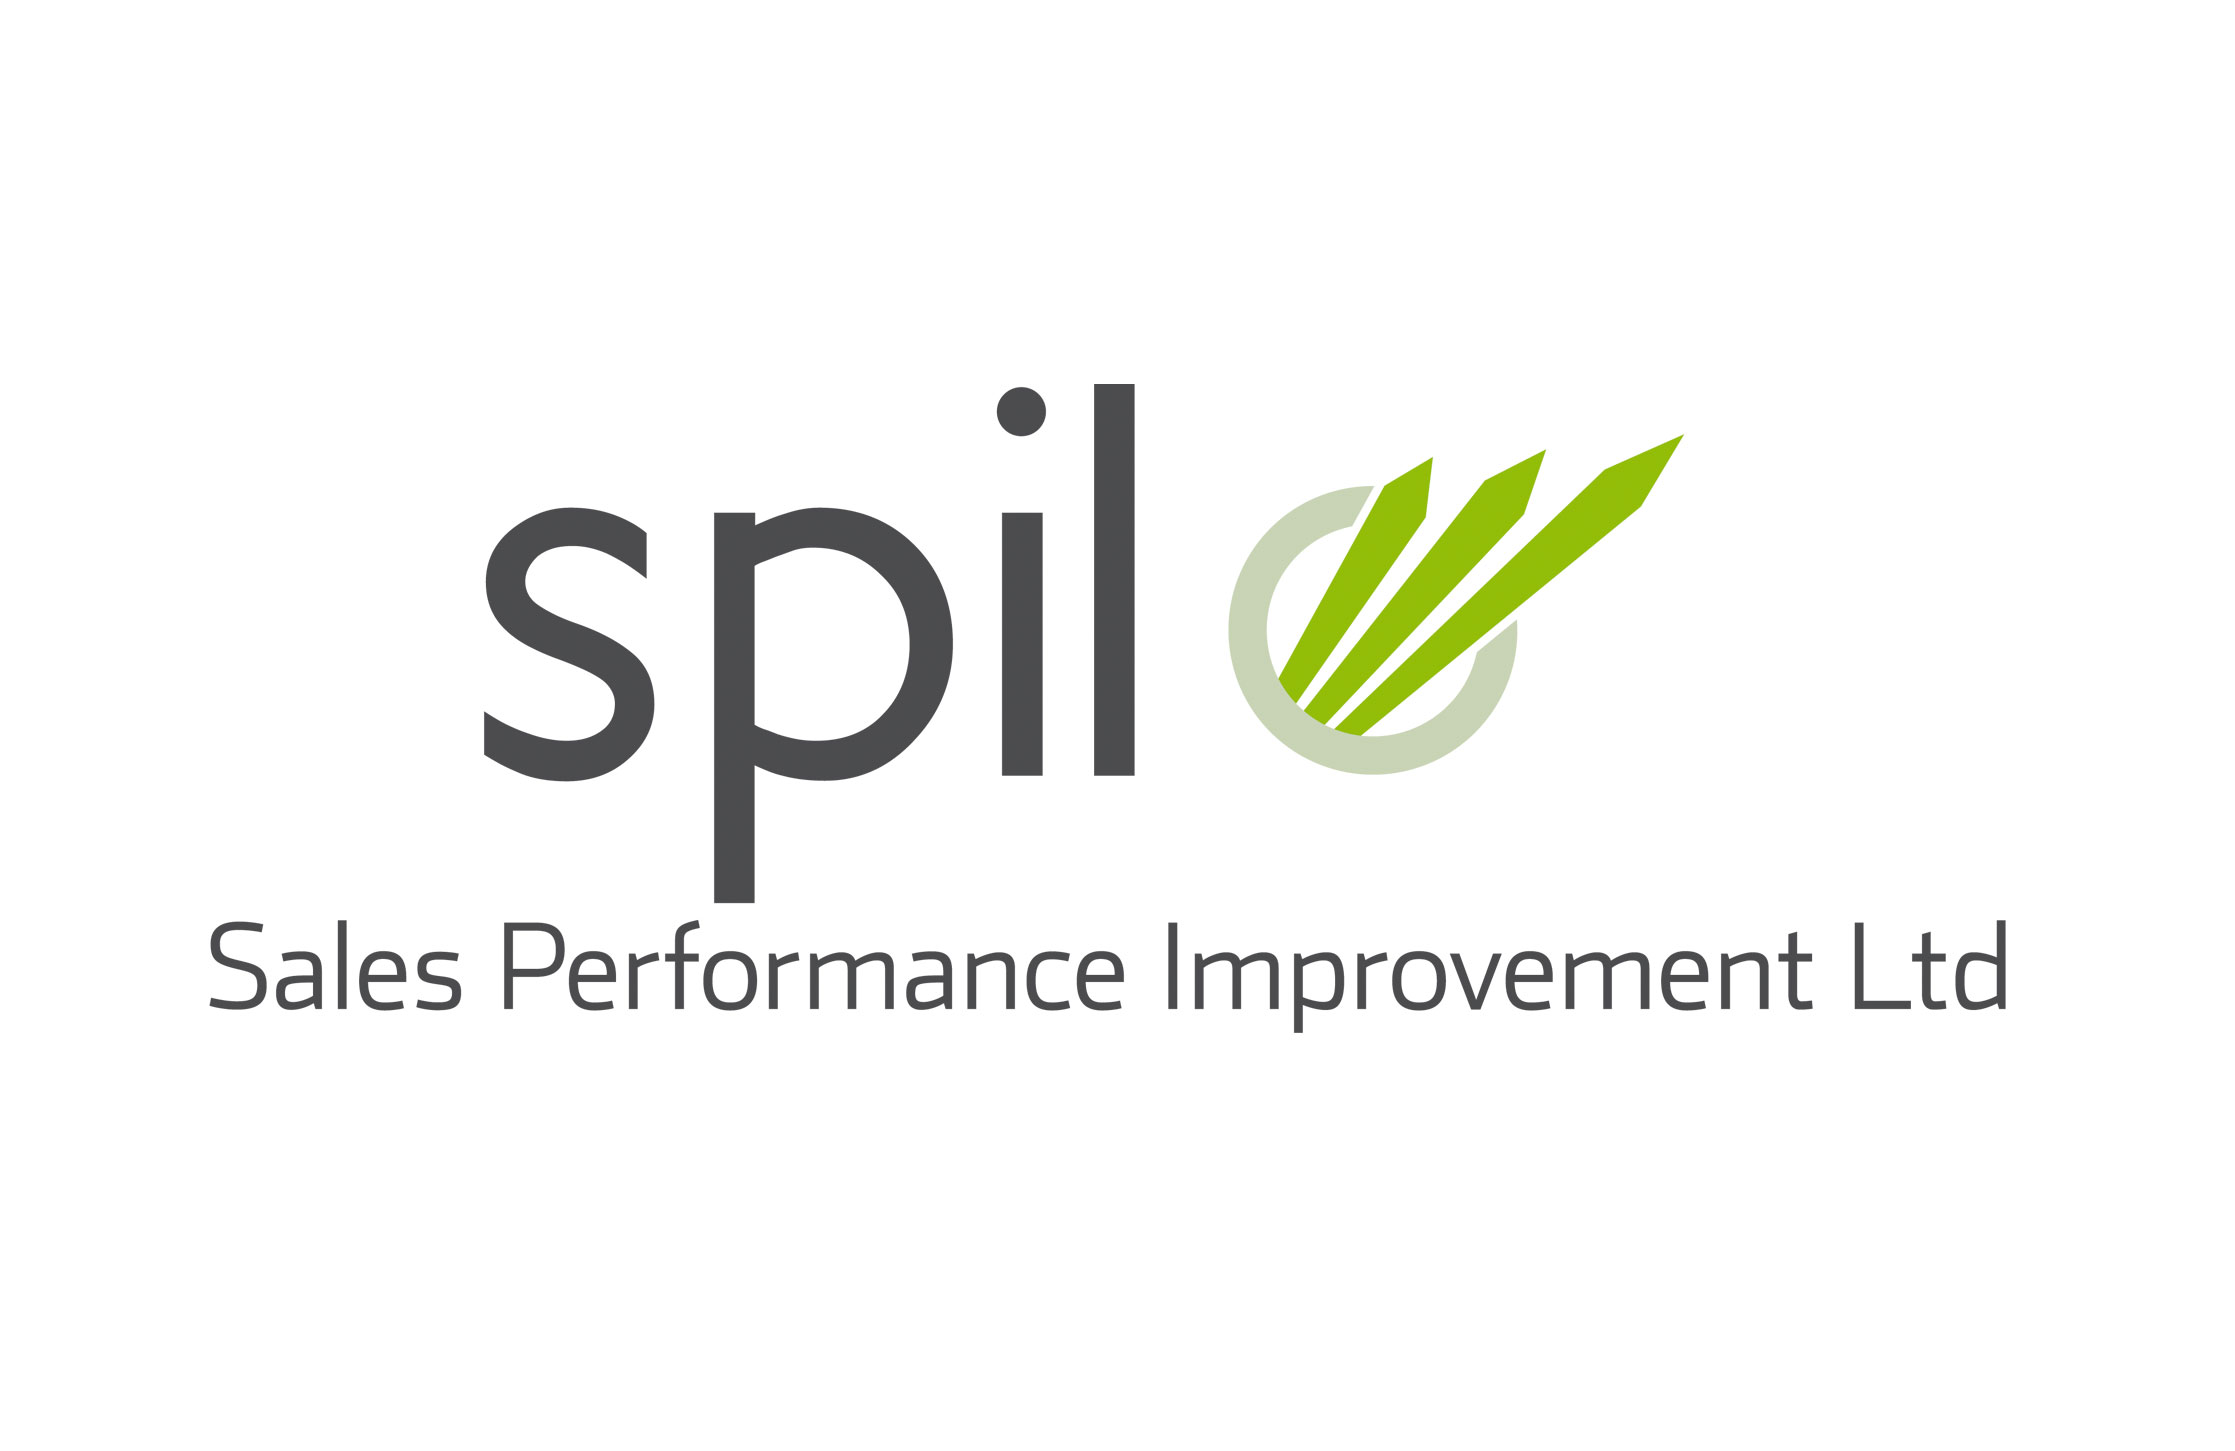 Sales Performance Improvement Limited Logo